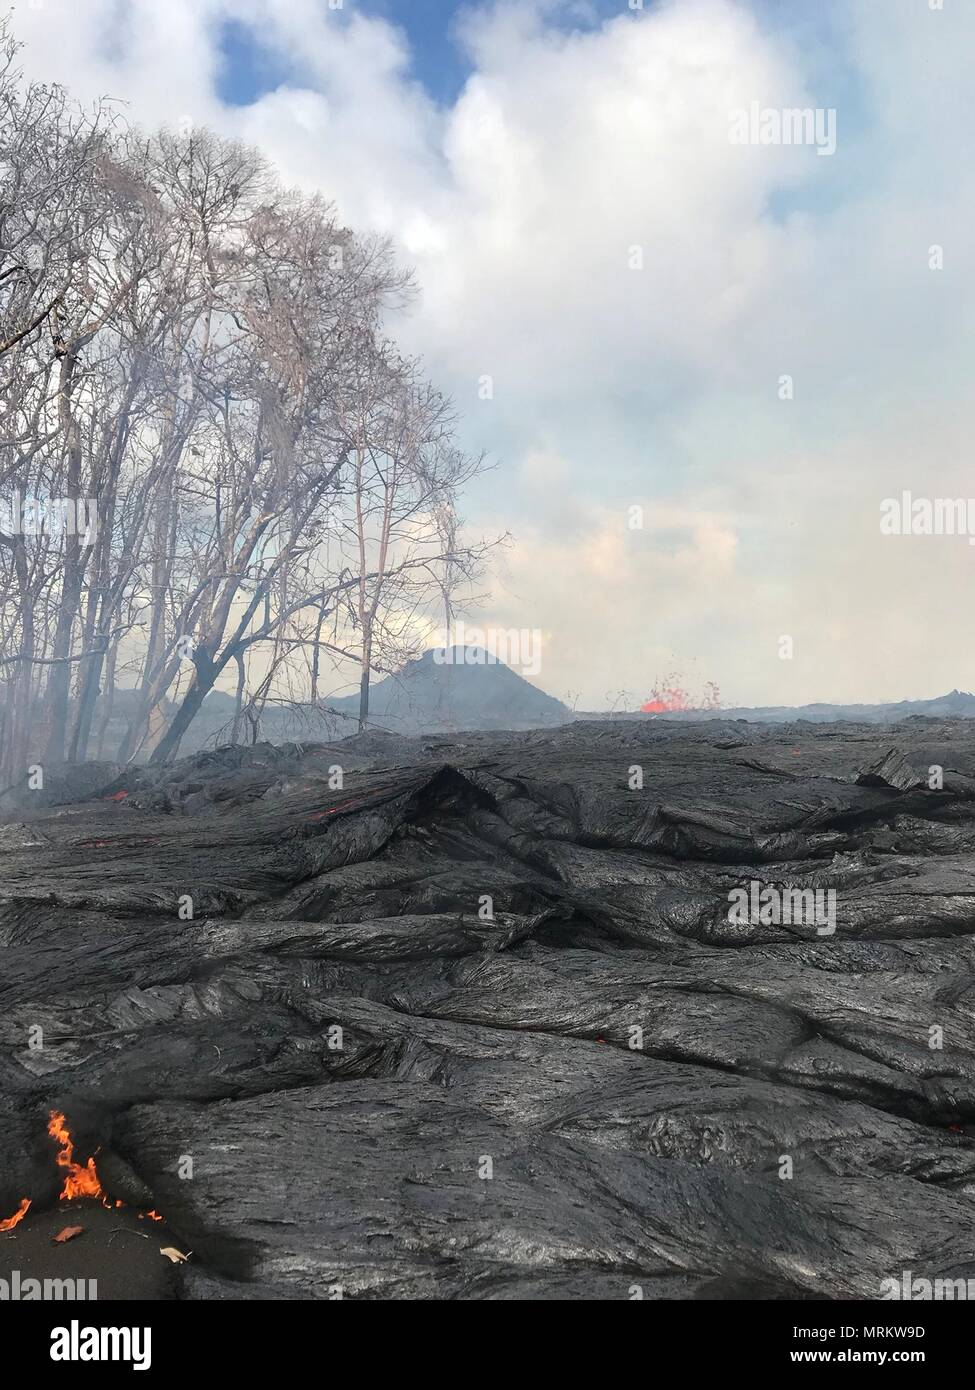 Lava continues to bubble up from fissures caused by the eruption of the Kilauea volcano May 24, 2018 in Pahoa, Hawaii. - Stock Image